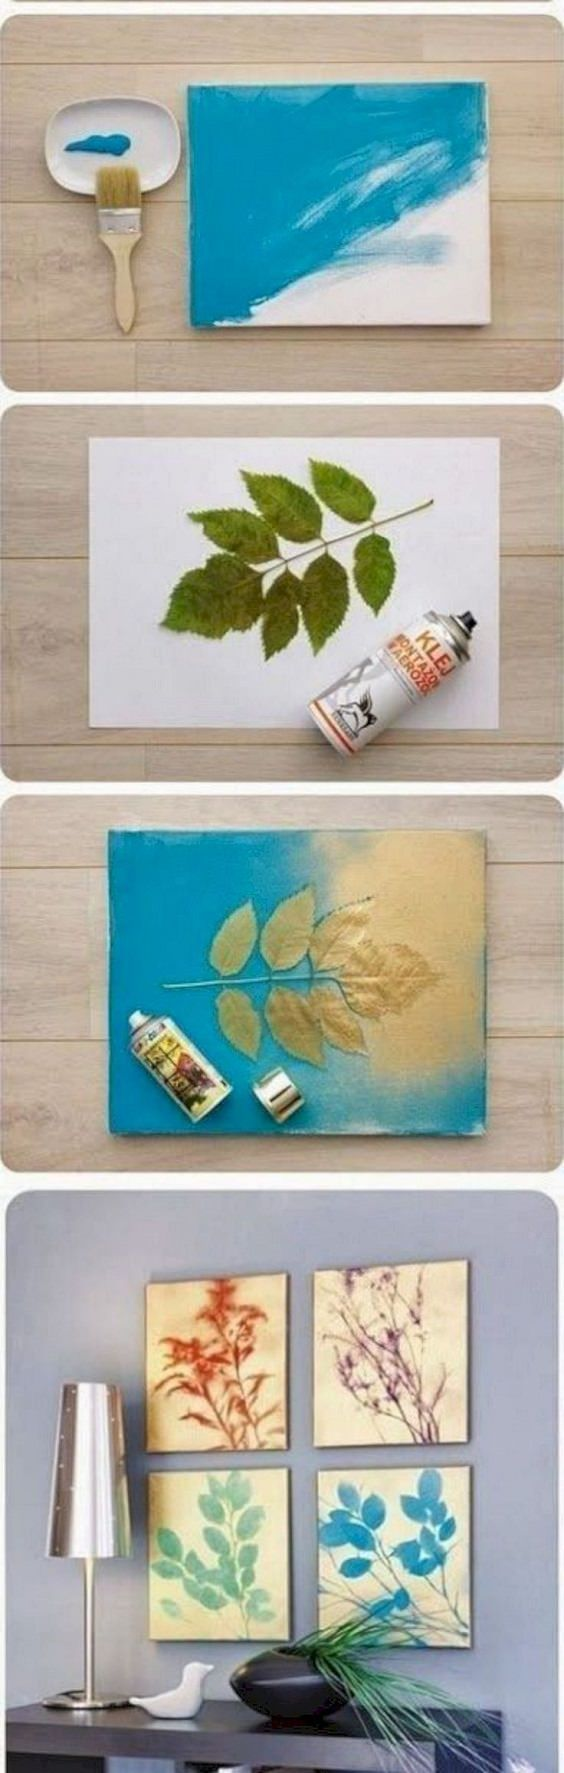 27 The Cheapest and Easiest Tutorials To Make Astonishing DIY Wall Art